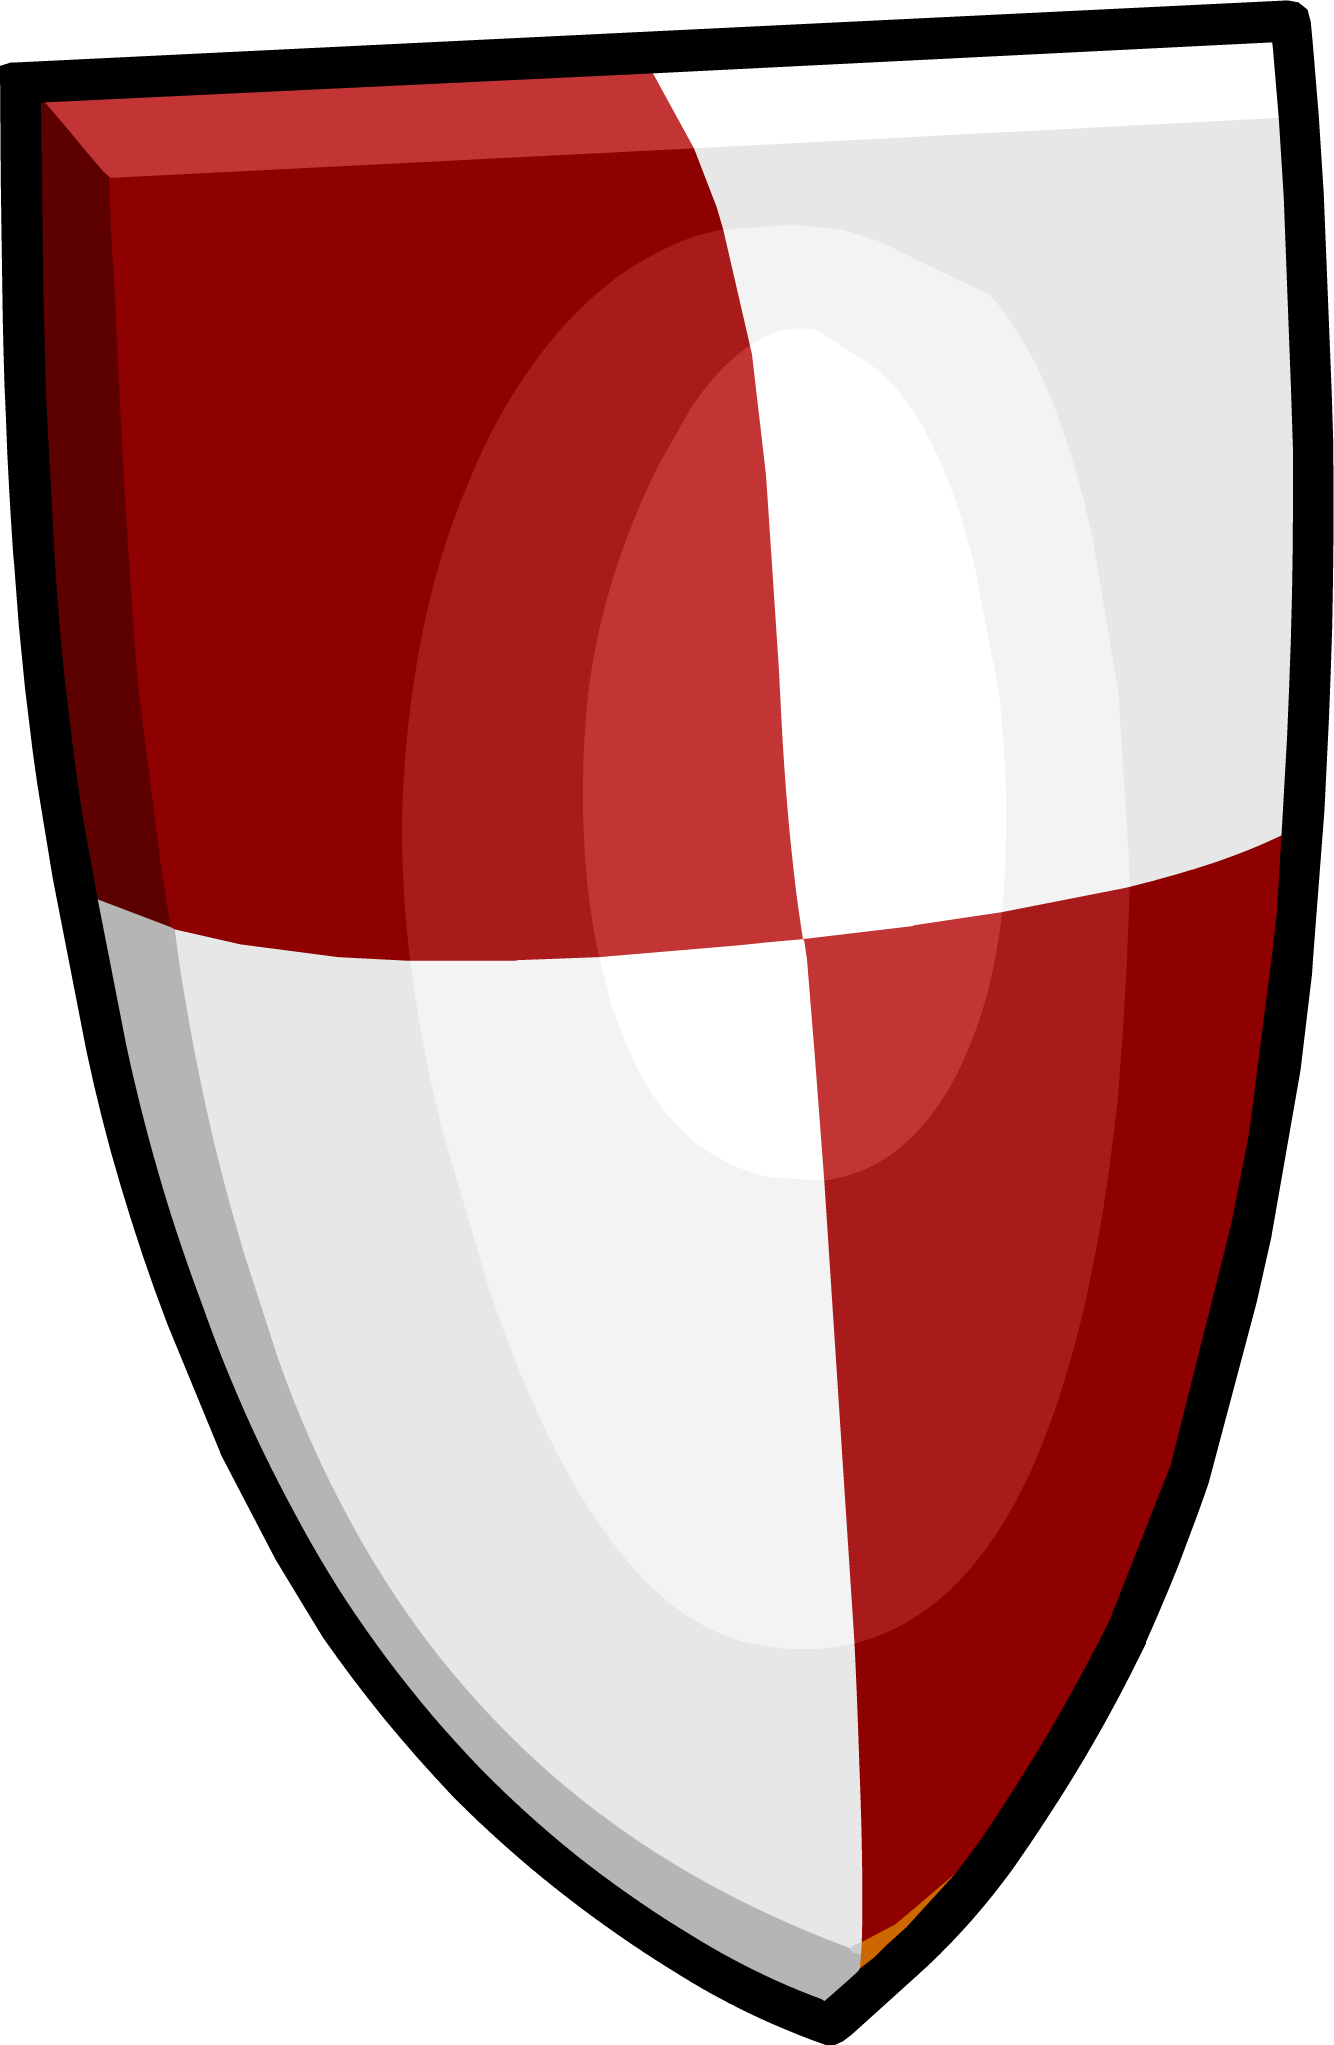 Image png club penguin. Clipart shield red black